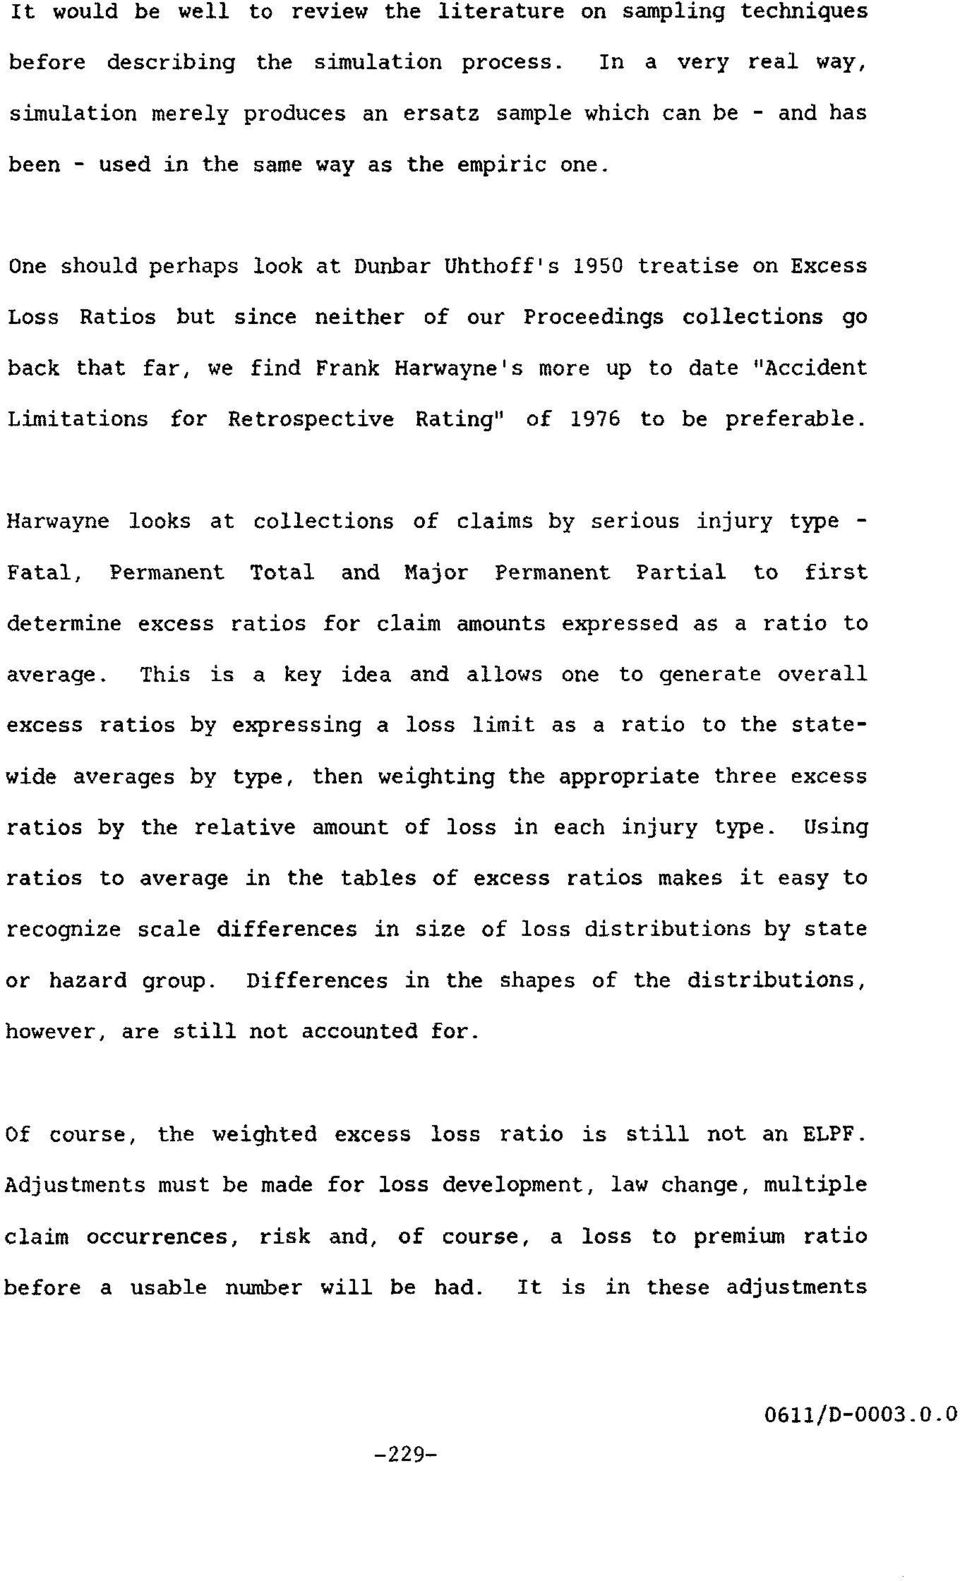 "One should perhaps look at Dunbar Uhthoff's 1950 treatise on Excess Loss Ratios but since neither of our Proceedings collections go back that far, we find Frank Harwayne's more up to date ""Accident"